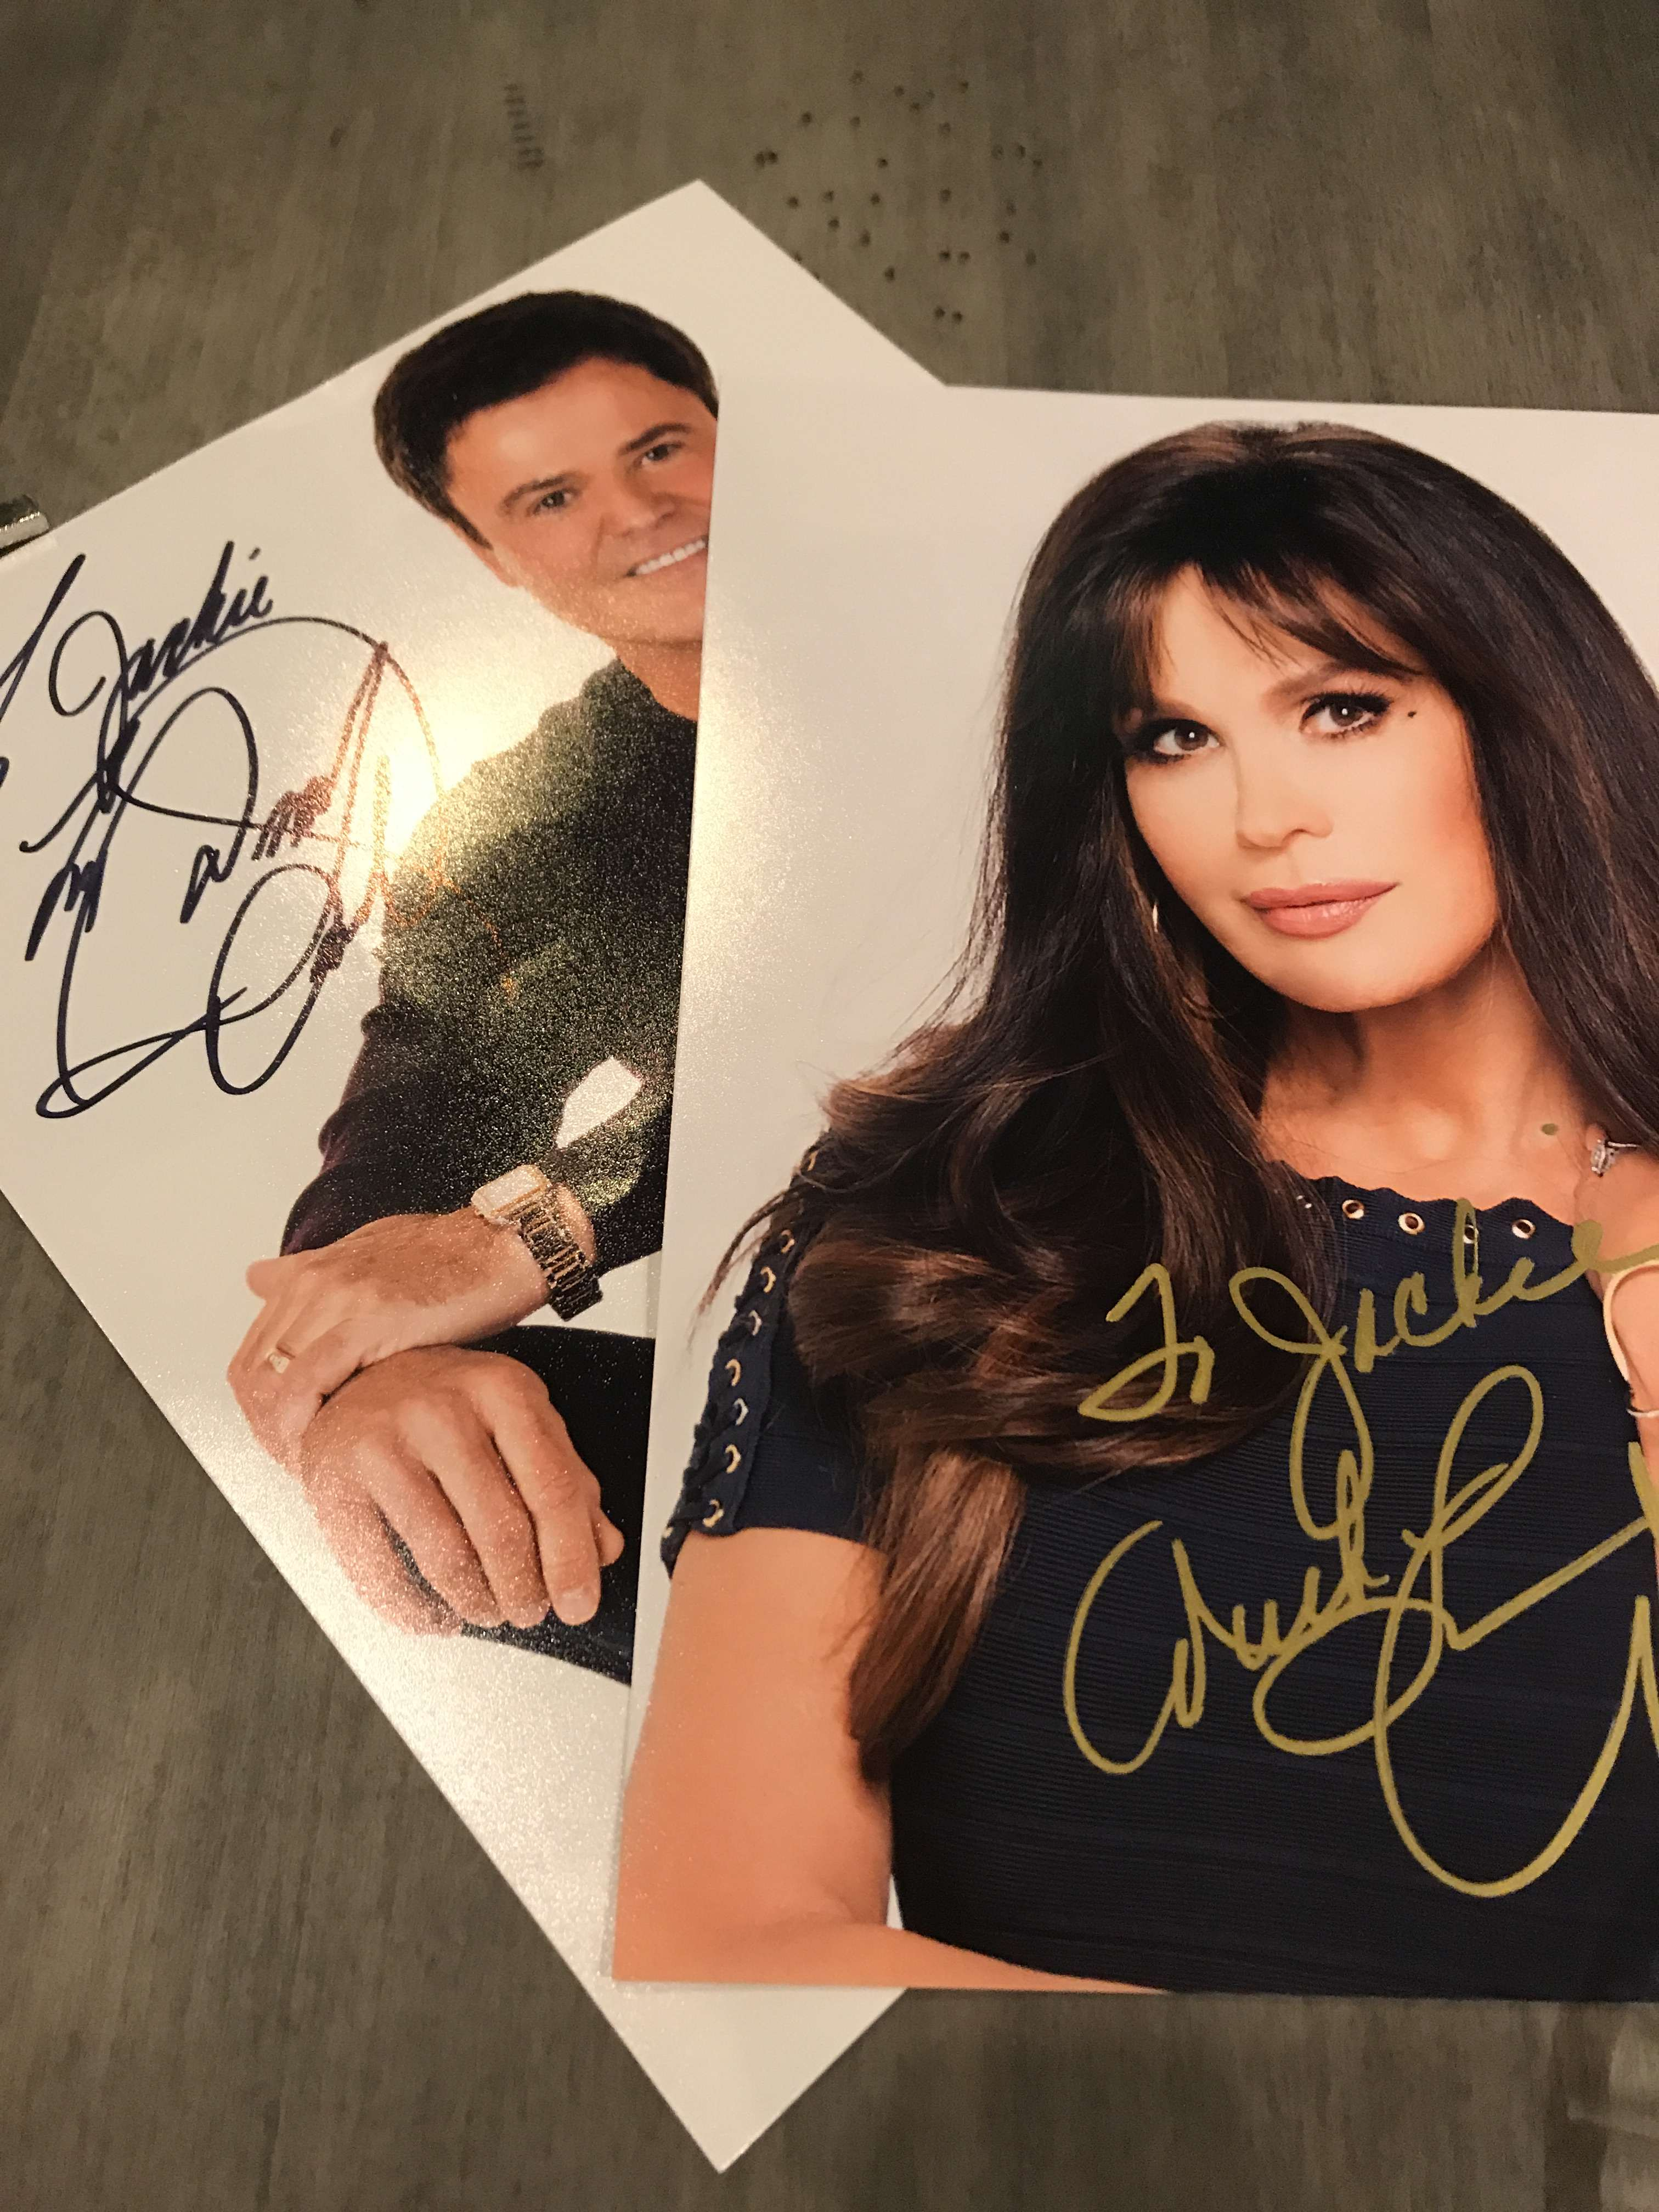 Donny & Marie Osmond Live in Las Vegas | 10 things you mst see and do when in Las Vegas | Elle Blonde Luxury Lifestyle Destination & Travel Blog